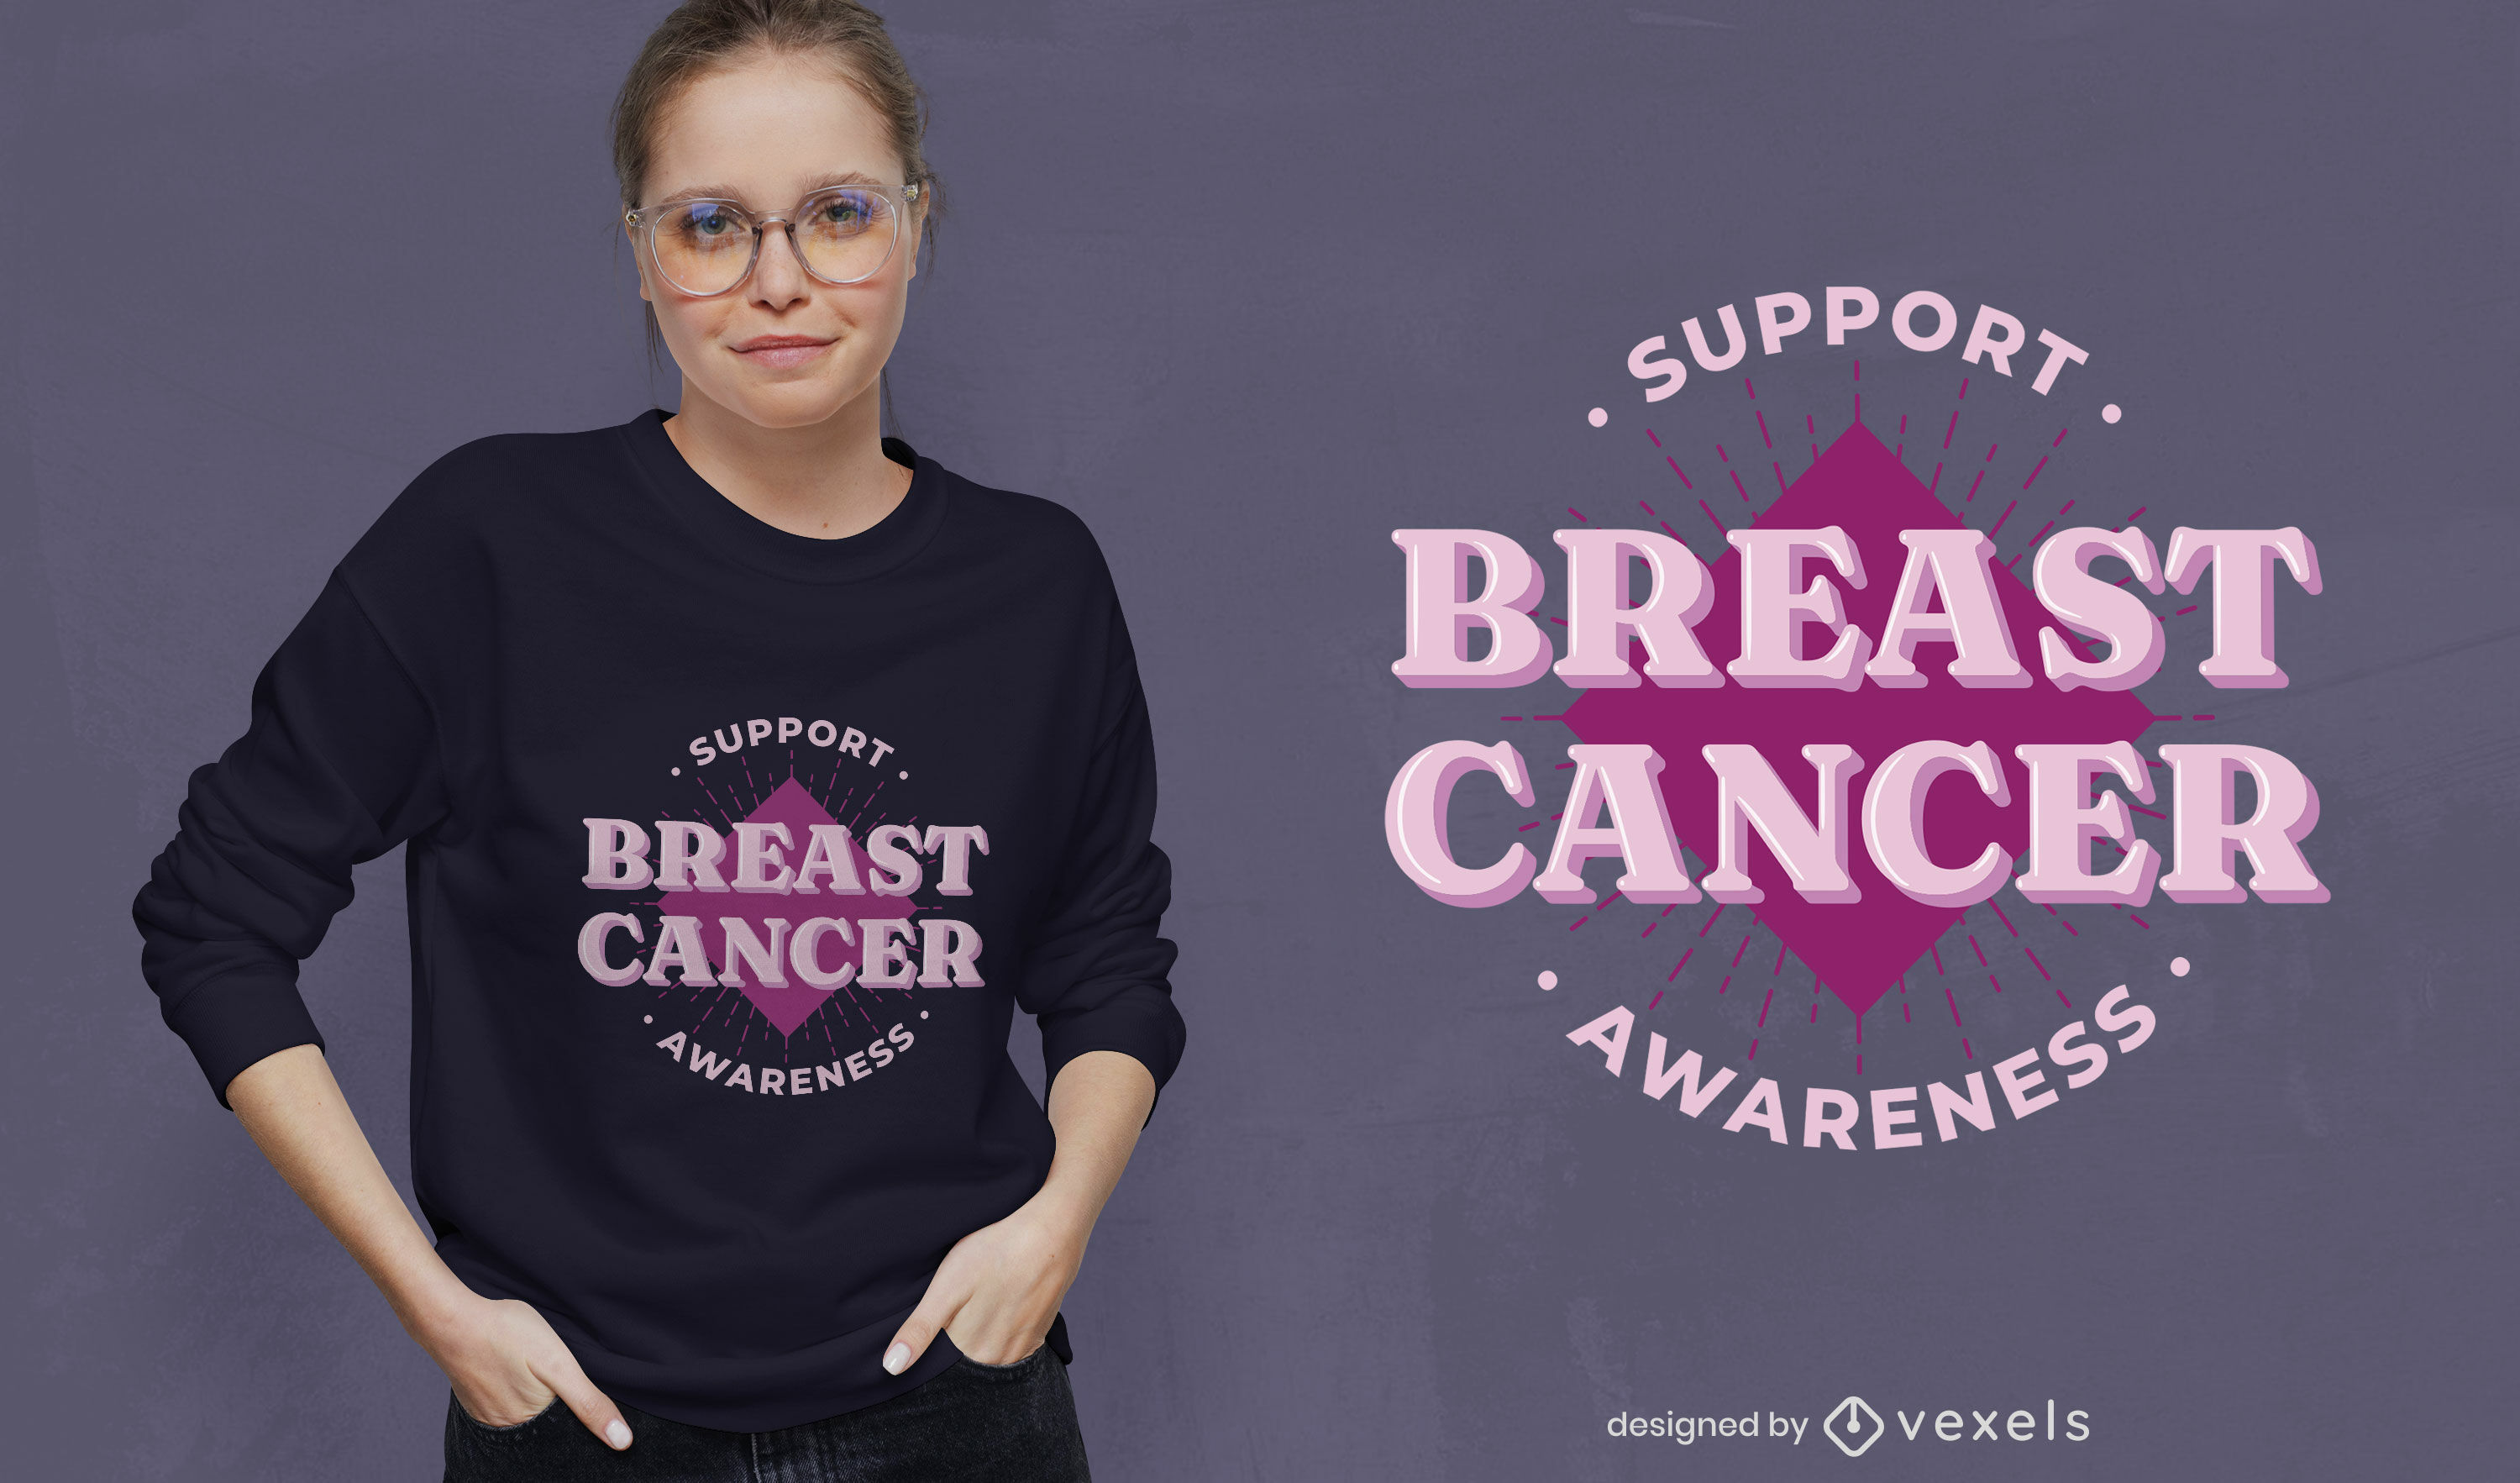 Breast cancer support t-shirt design